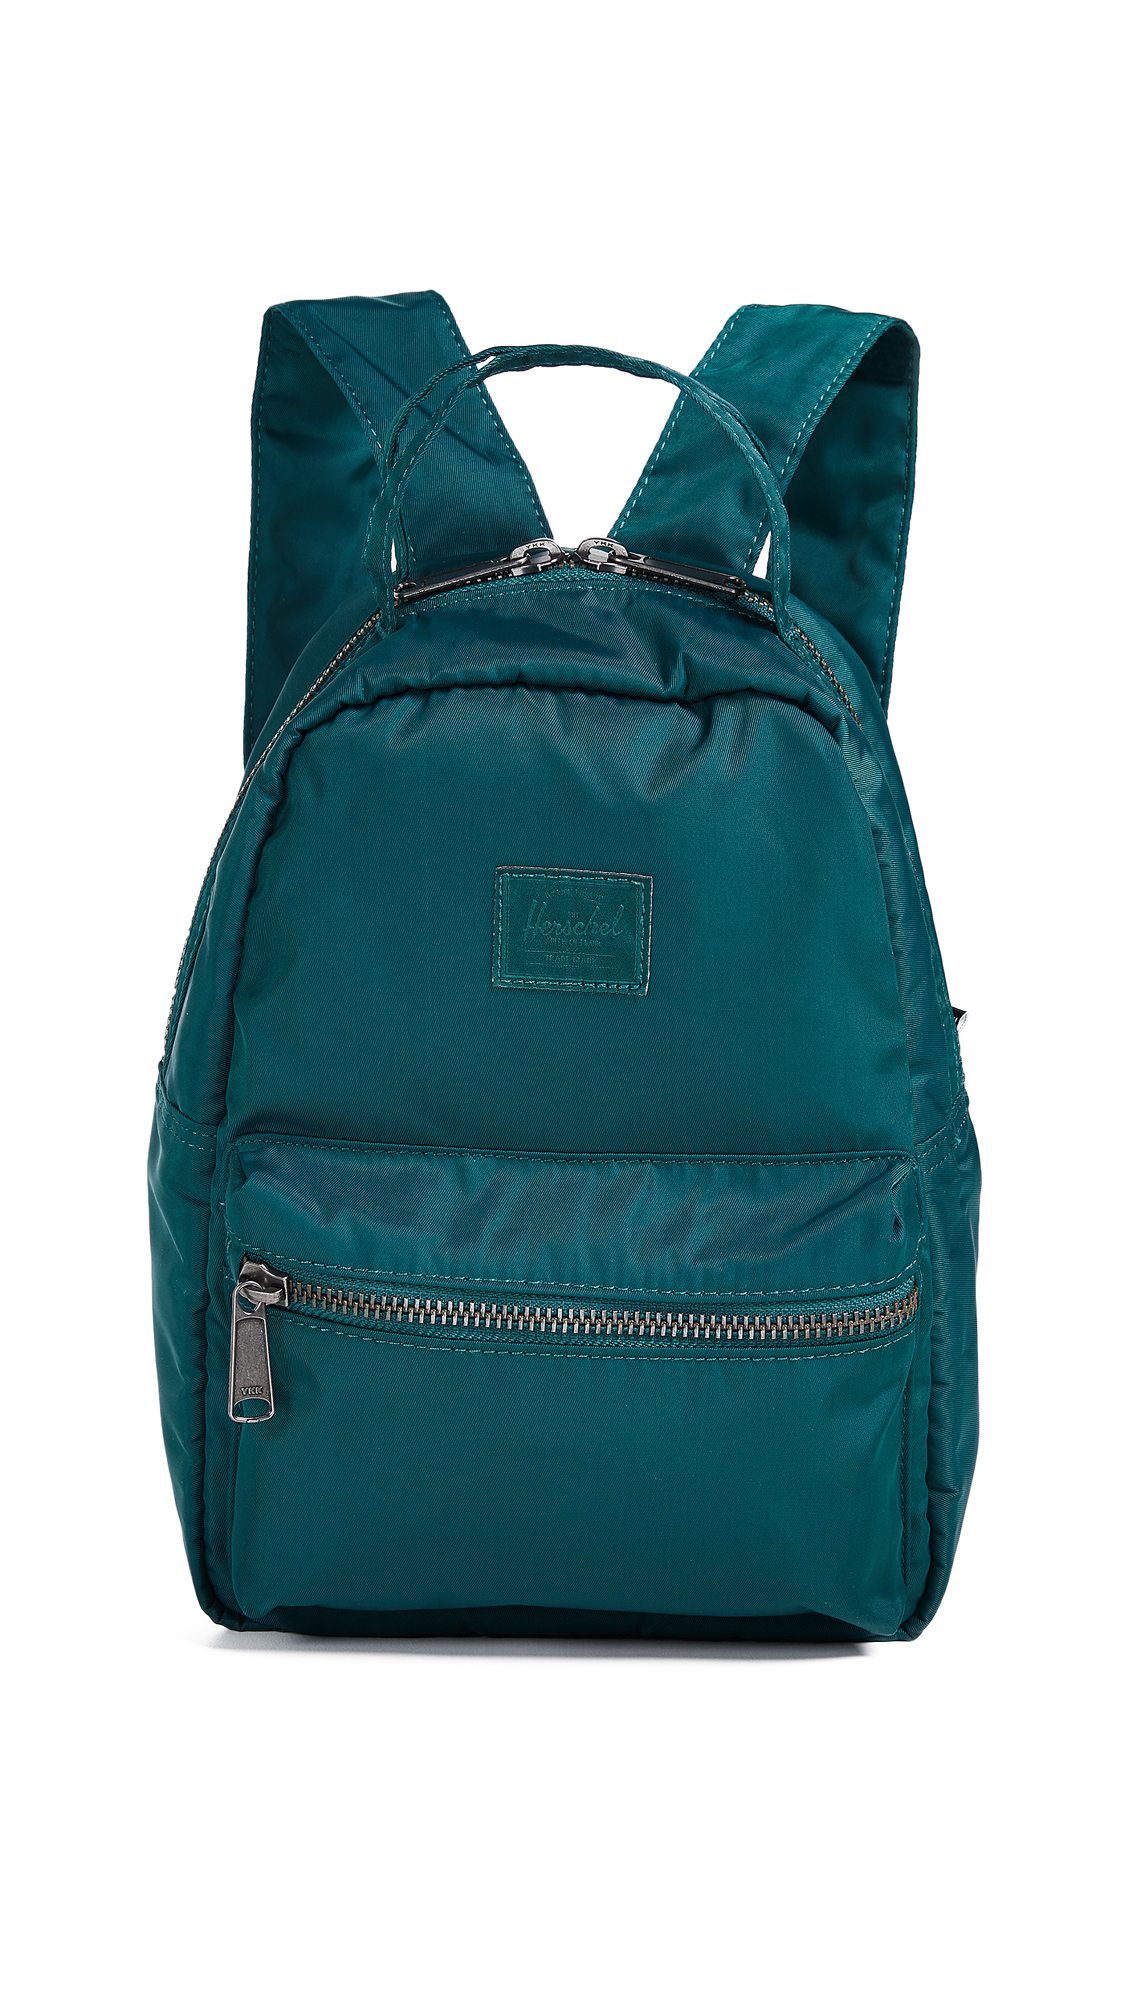 Flight Satin Nova Mini Backpack, Deep Teal